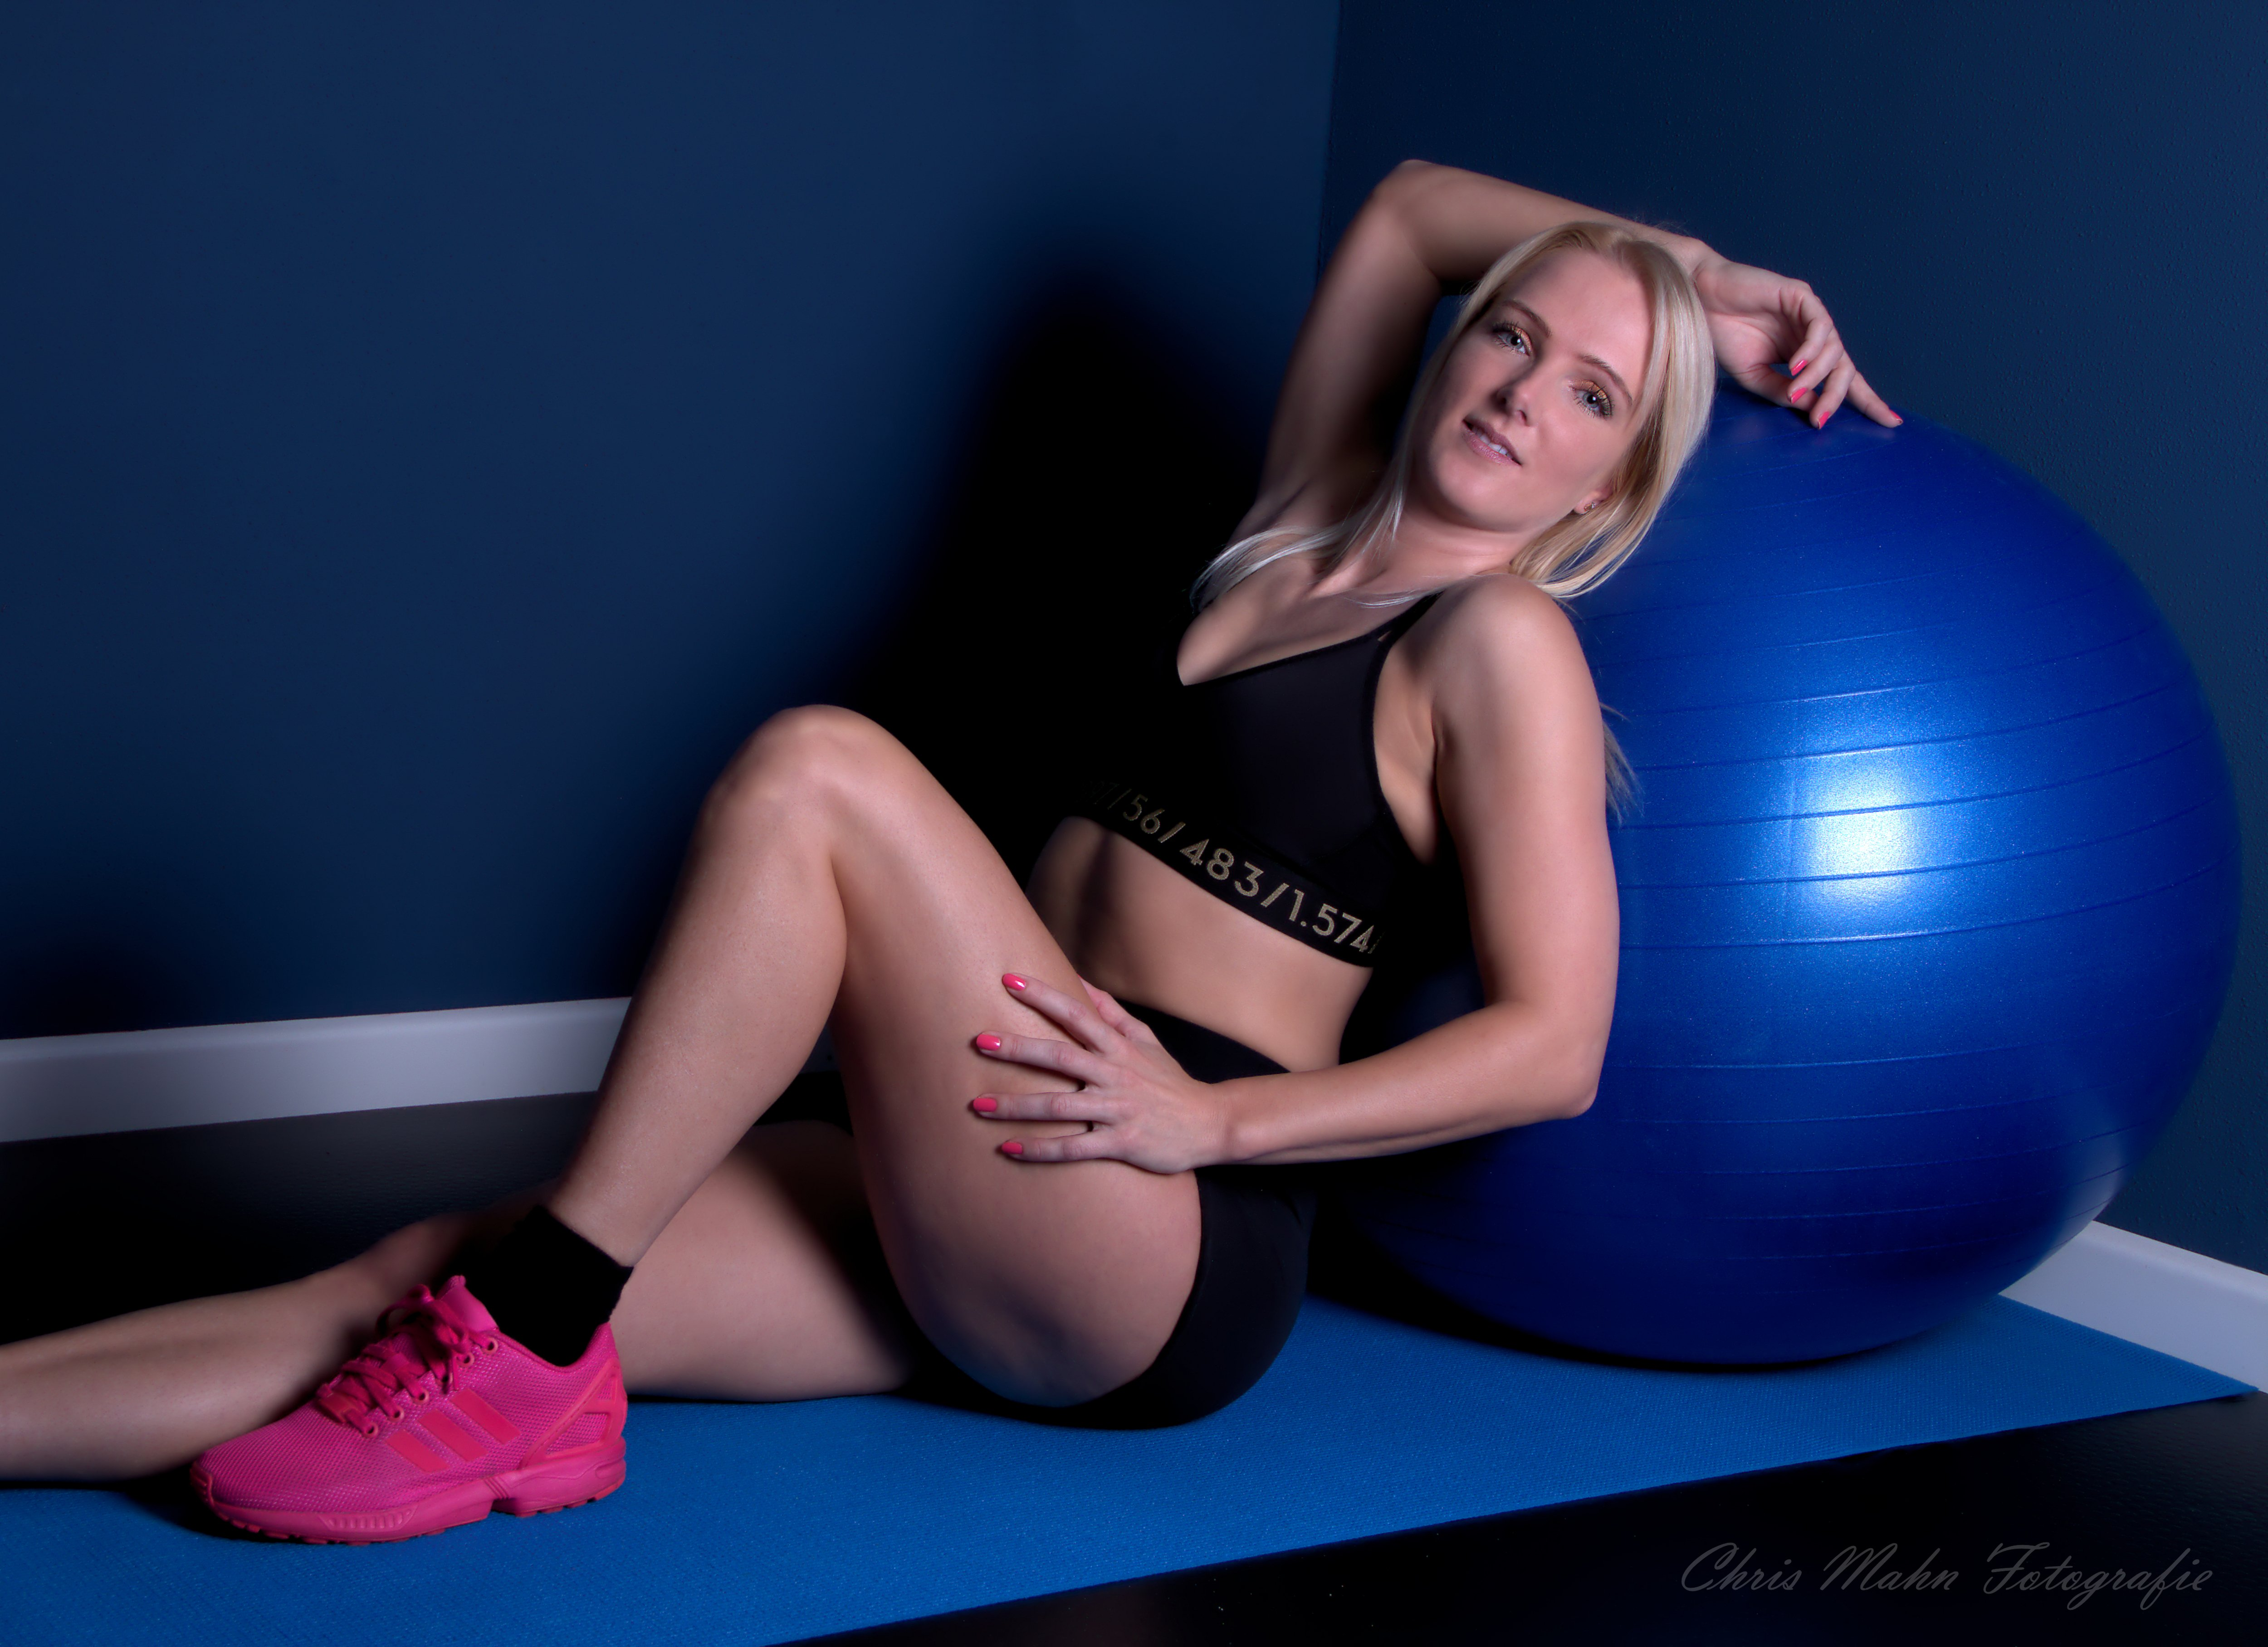 WEBSITE SPORT & FITNESS There is that face 2516